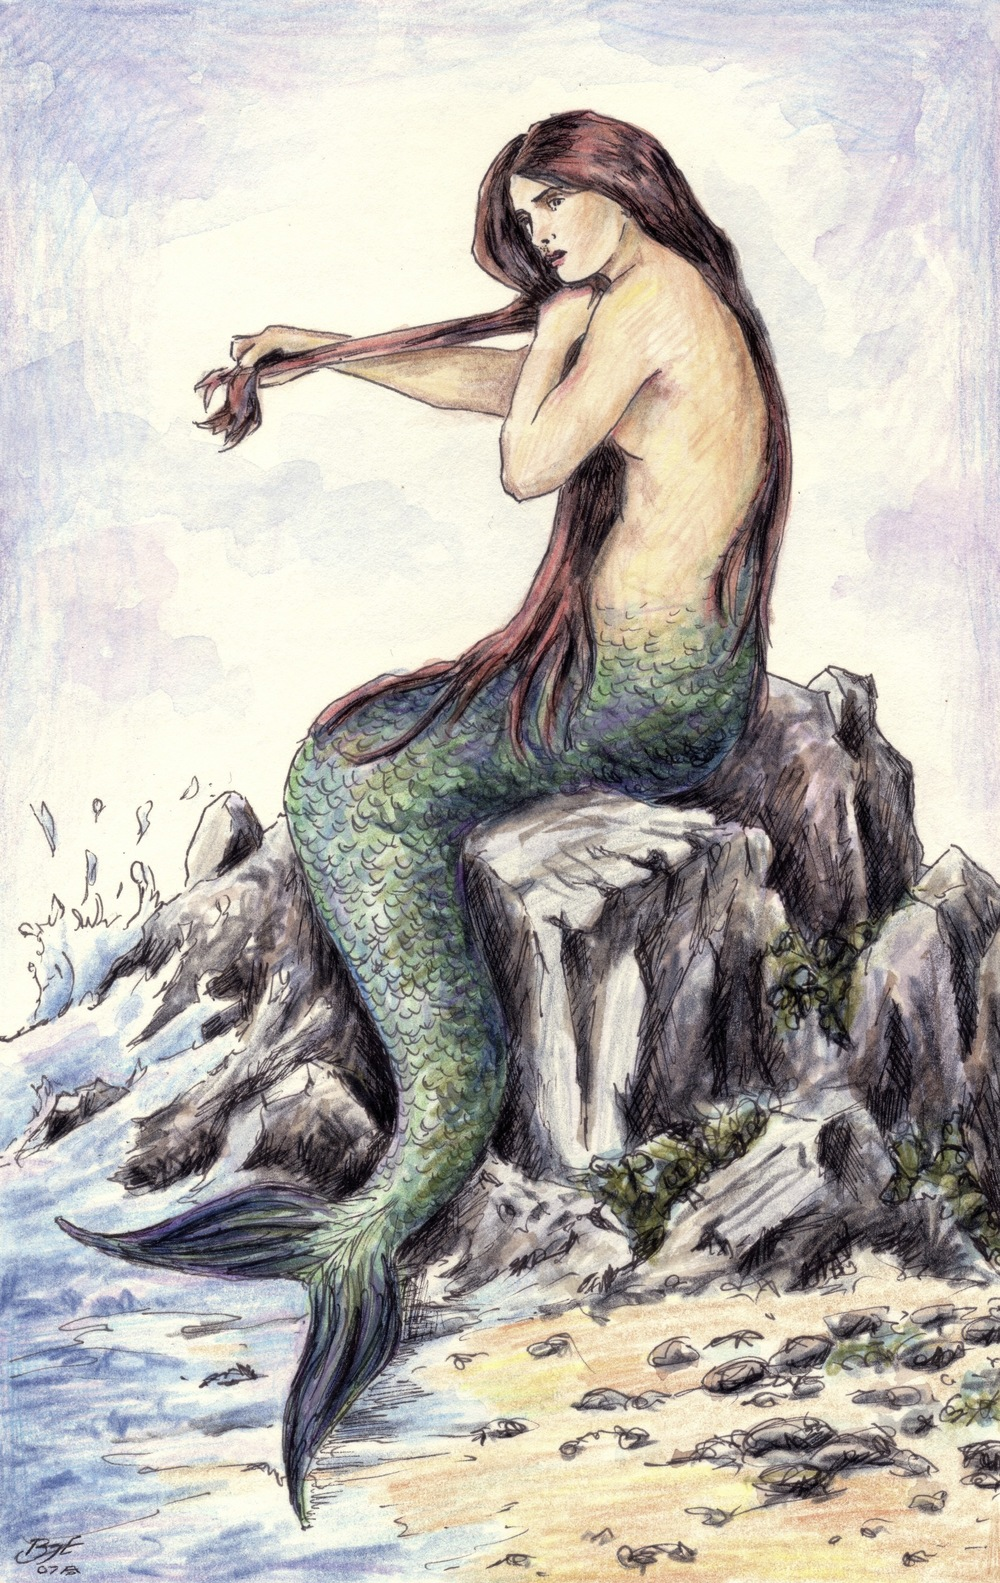 Mermaid - Version 2.jpg